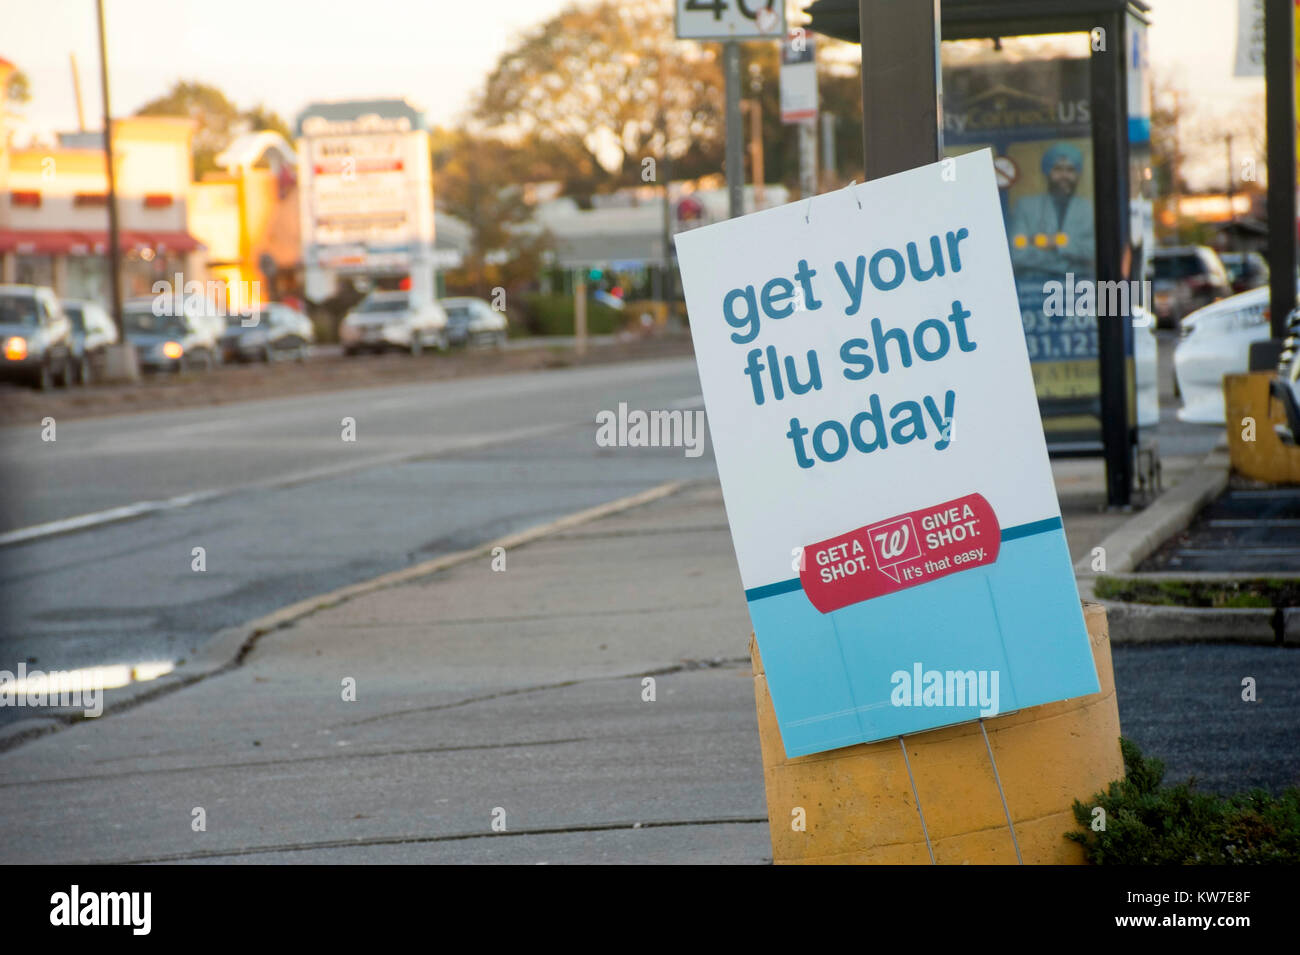 Street banner advertising where to get flu shots - Stock Image